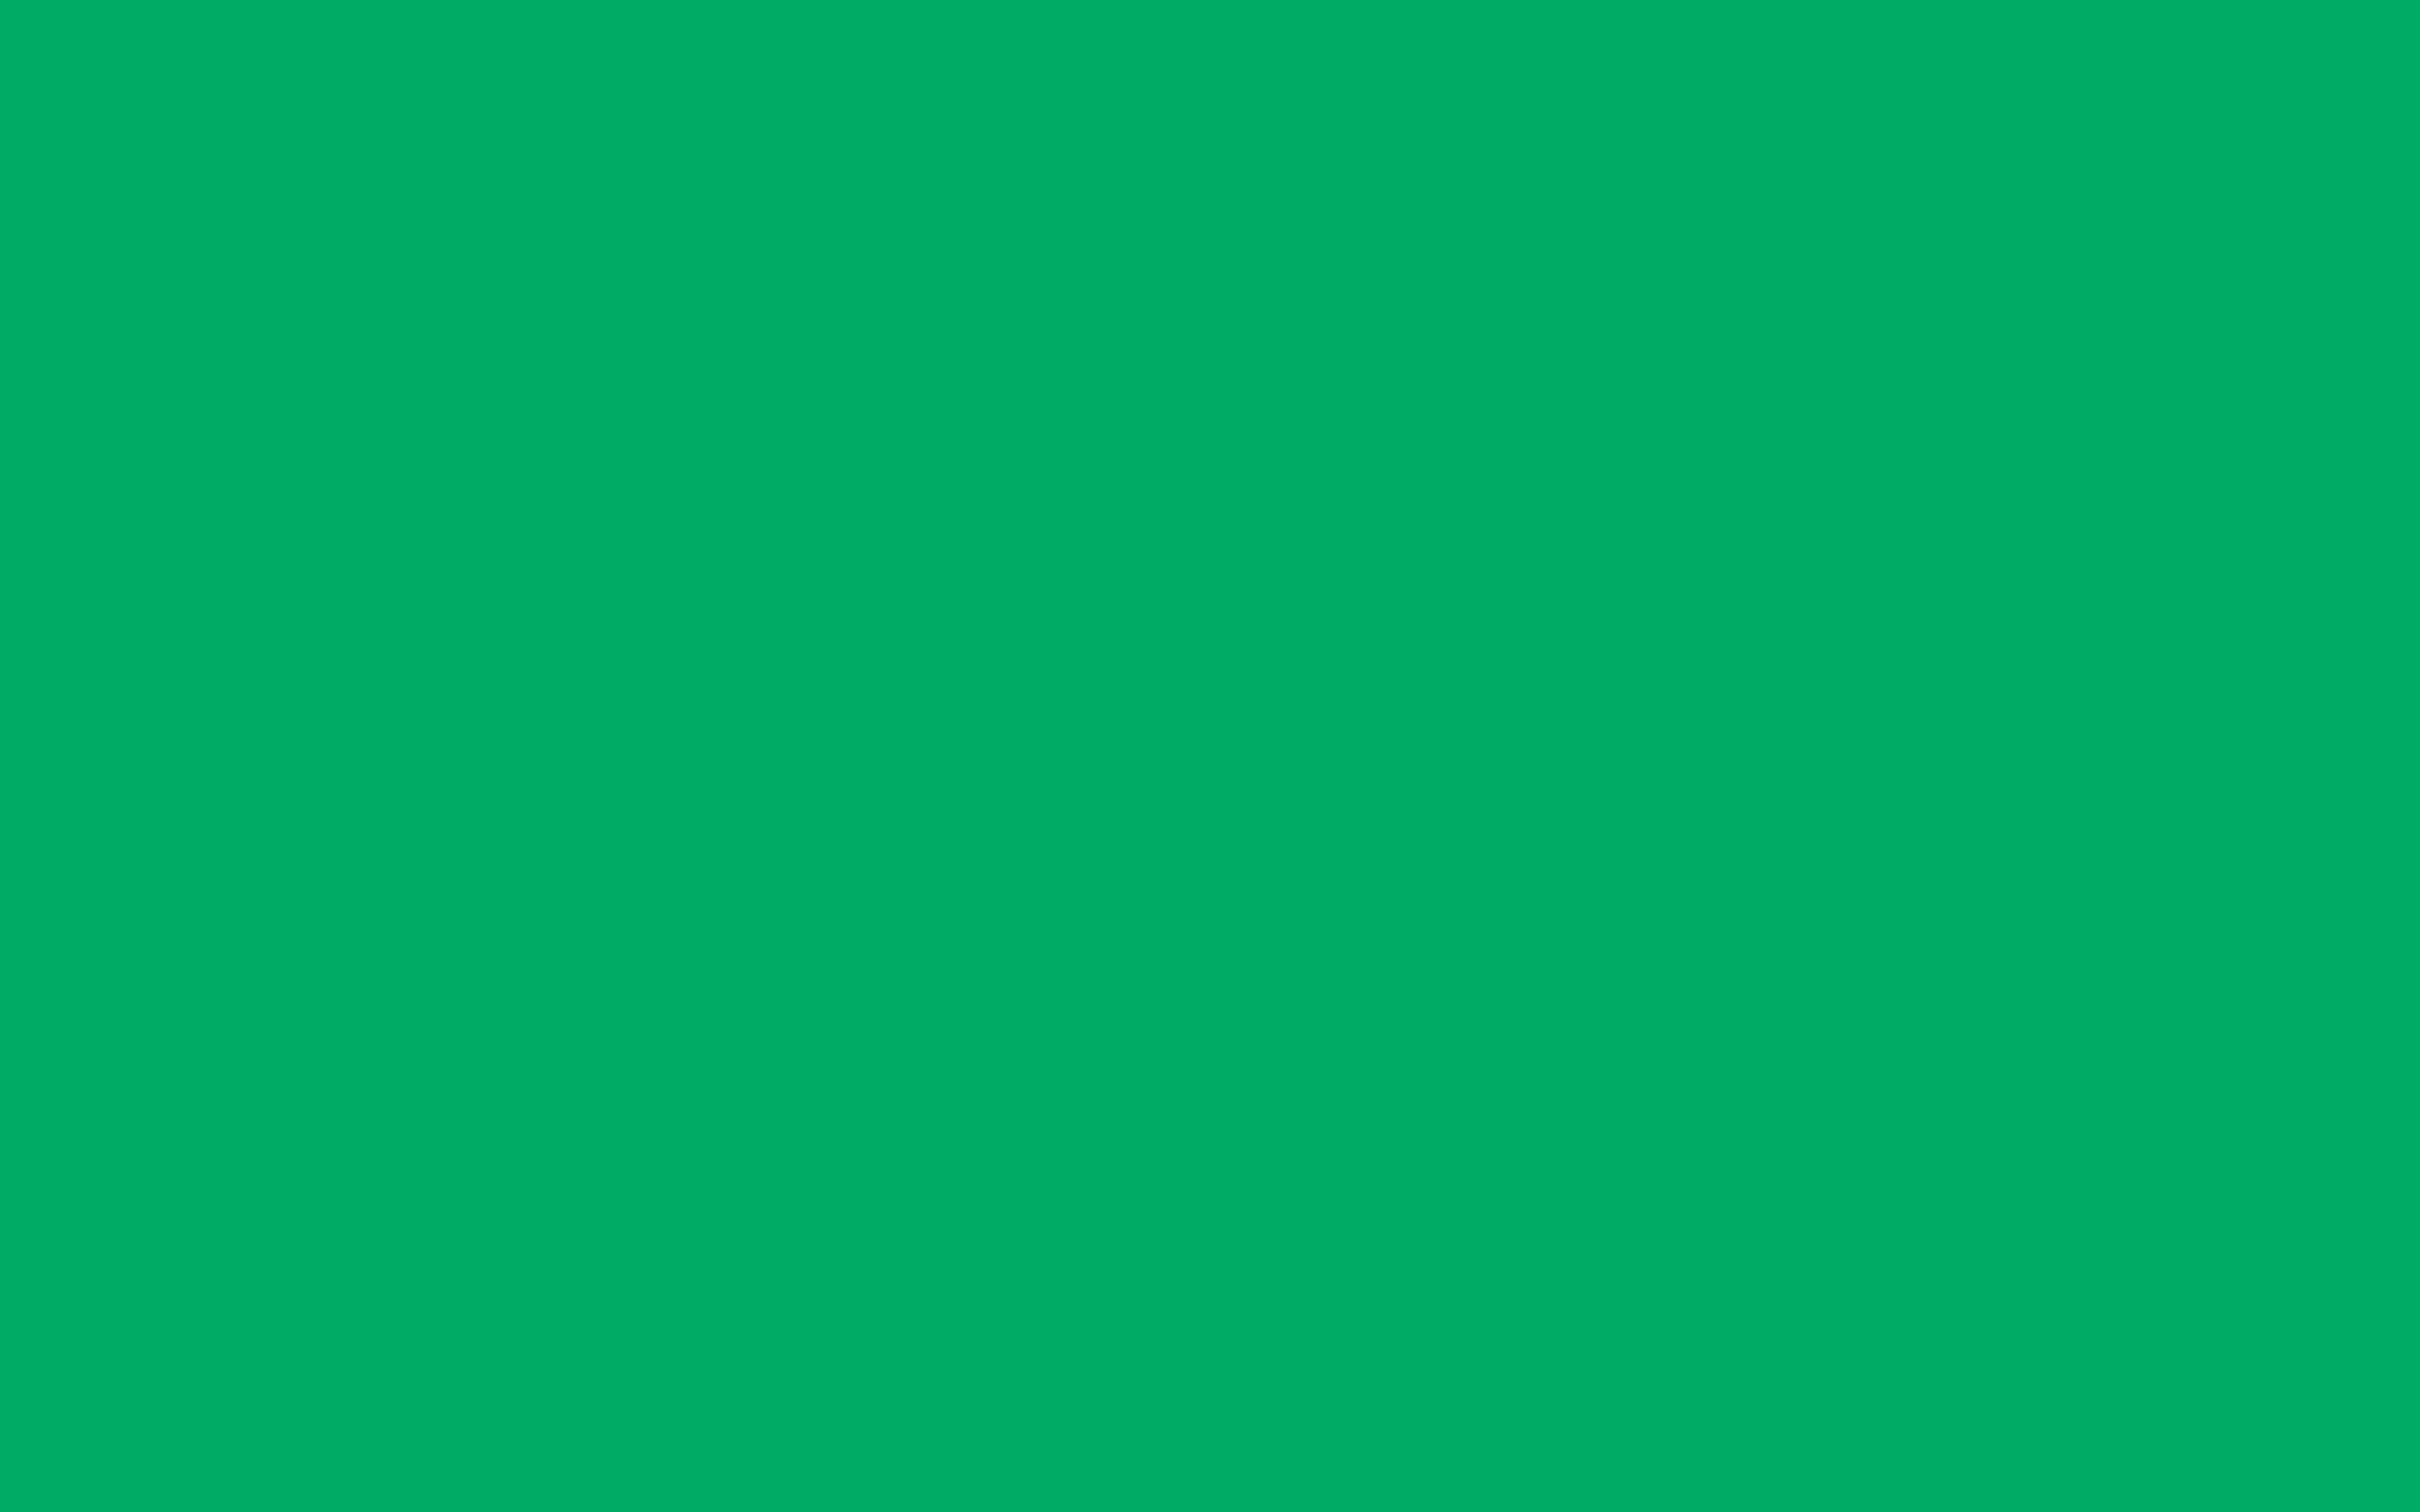 2560x1600 GO Green Solid Color Background